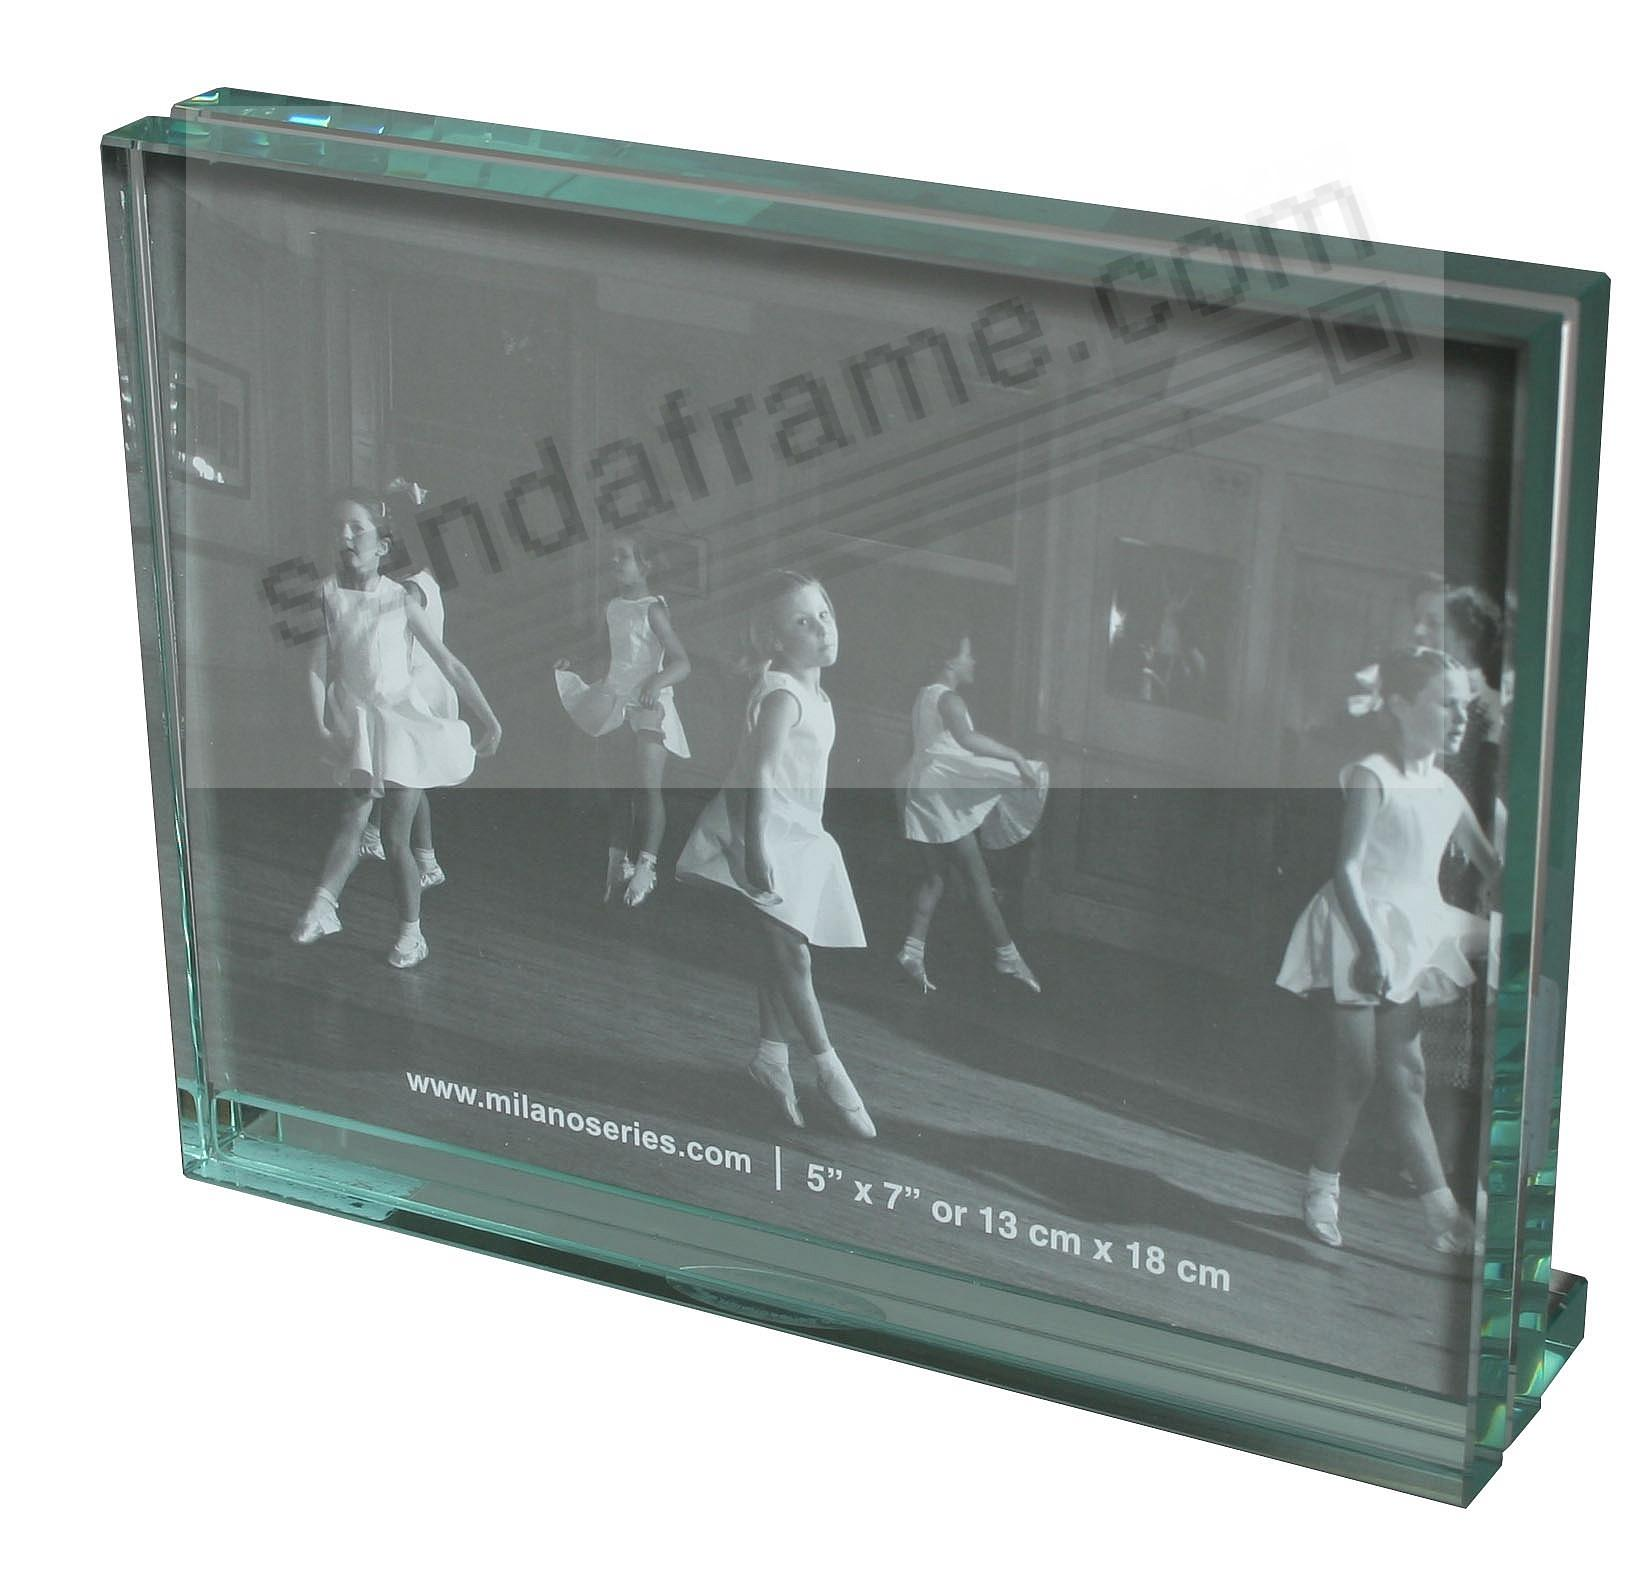 CLARITY Glass Block 5x7 frame by Milano Series - Picture Frames ...